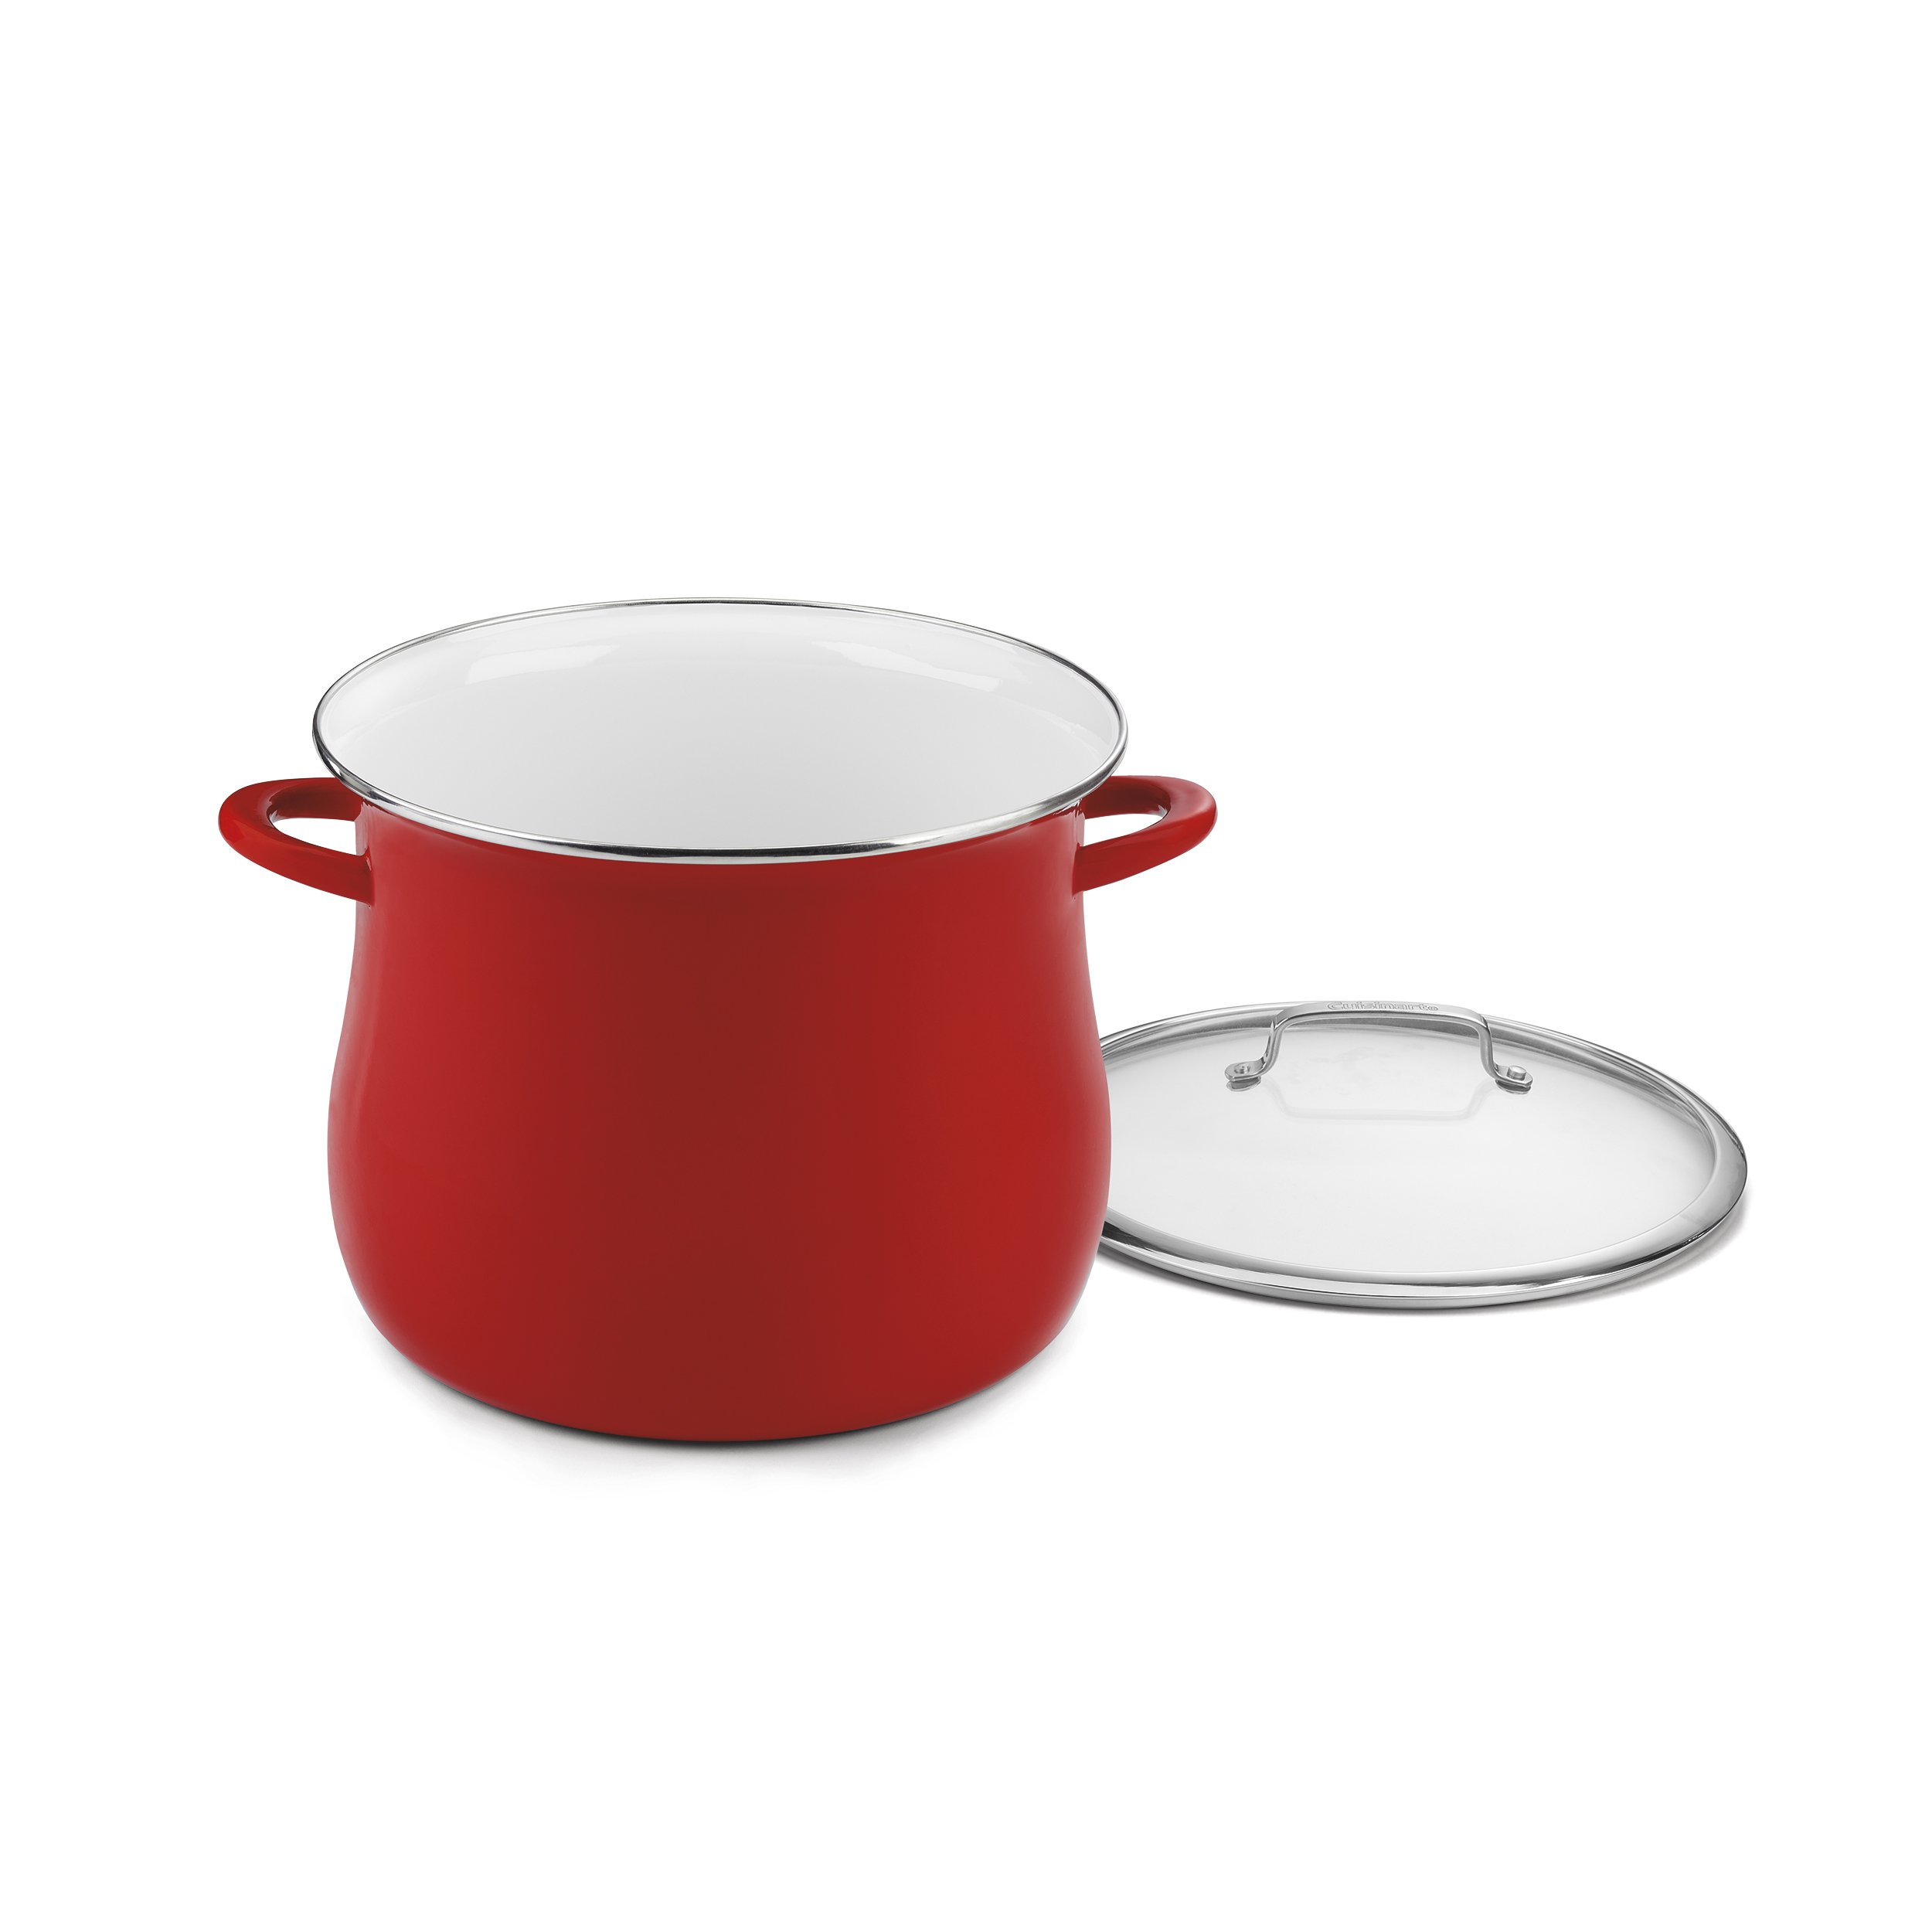 Cuisinart EOSB166-30R Stockpot with Cover, 16 quart, Red